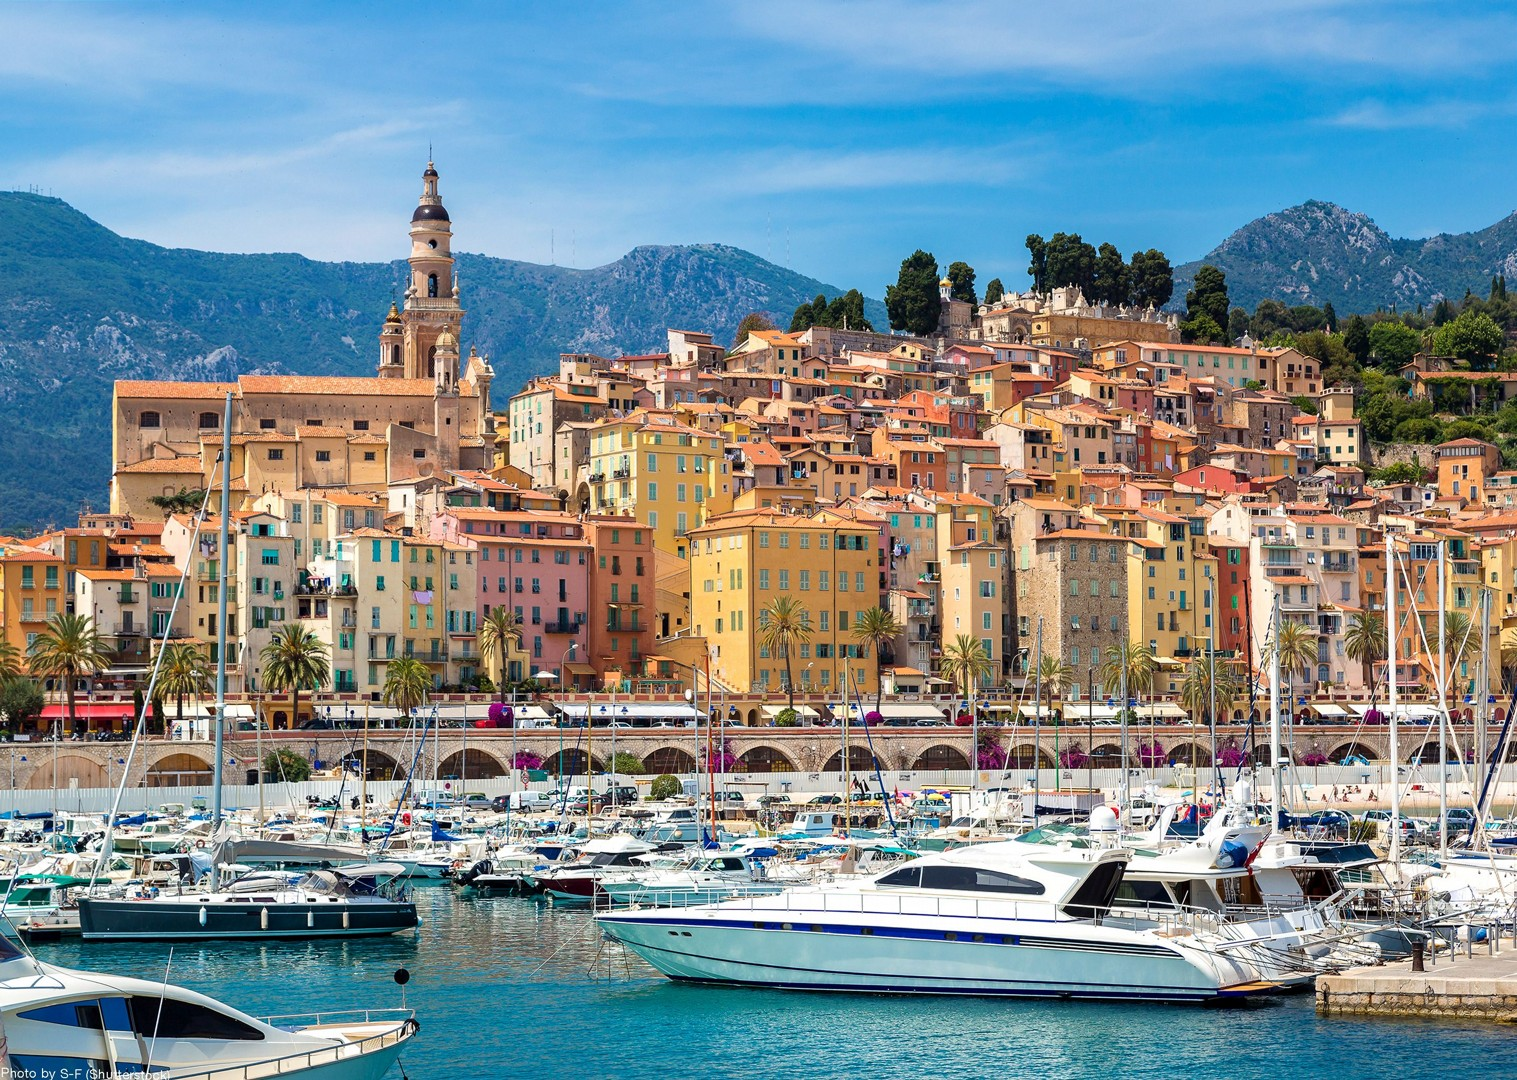 provence-france-harbour-cycling-road-tour.jpg - France - Provence - Alpes Maritimes - Guided Road Cycling Holiday - Road Cycling